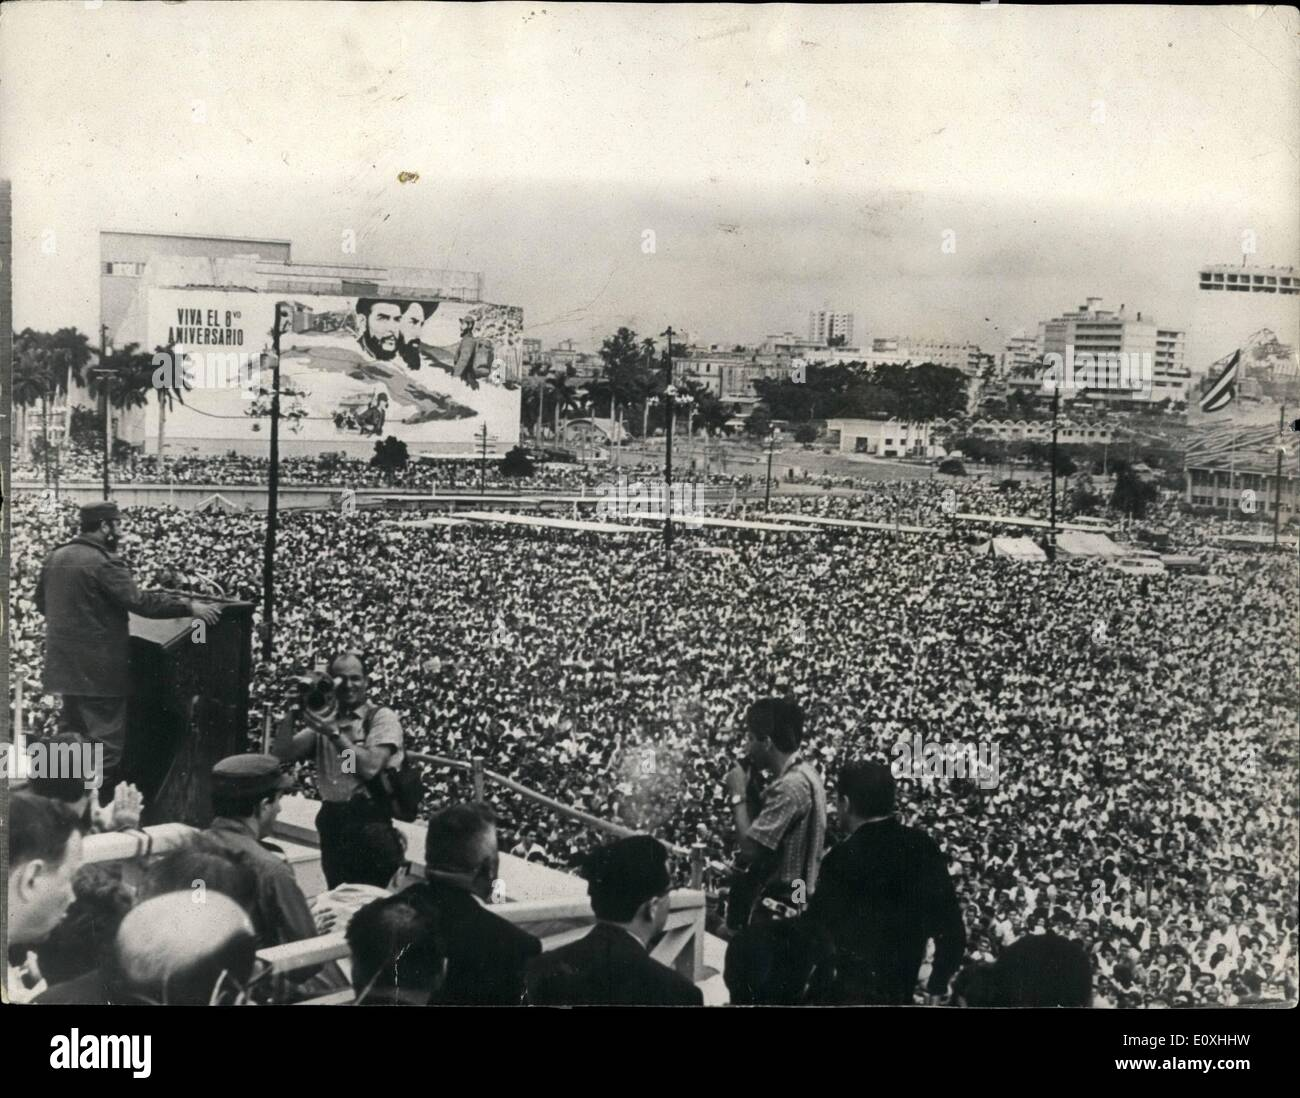 Jan. 01, 1967 - EIGHTH ANNIVERSARY OF CURAN REVOLUTION To commemorate the eighth anniversary of the Cuban Revolutions the traditional military parade was held in Havana,e Revolution Square. The final addreee was. delivered by Prime Minister, Major Fidel Oaetro. ''' PHOTO SHOWS: Major Fidel Oaetro seen during his final address in Revolution Sqmpre, Havana - Stock Image